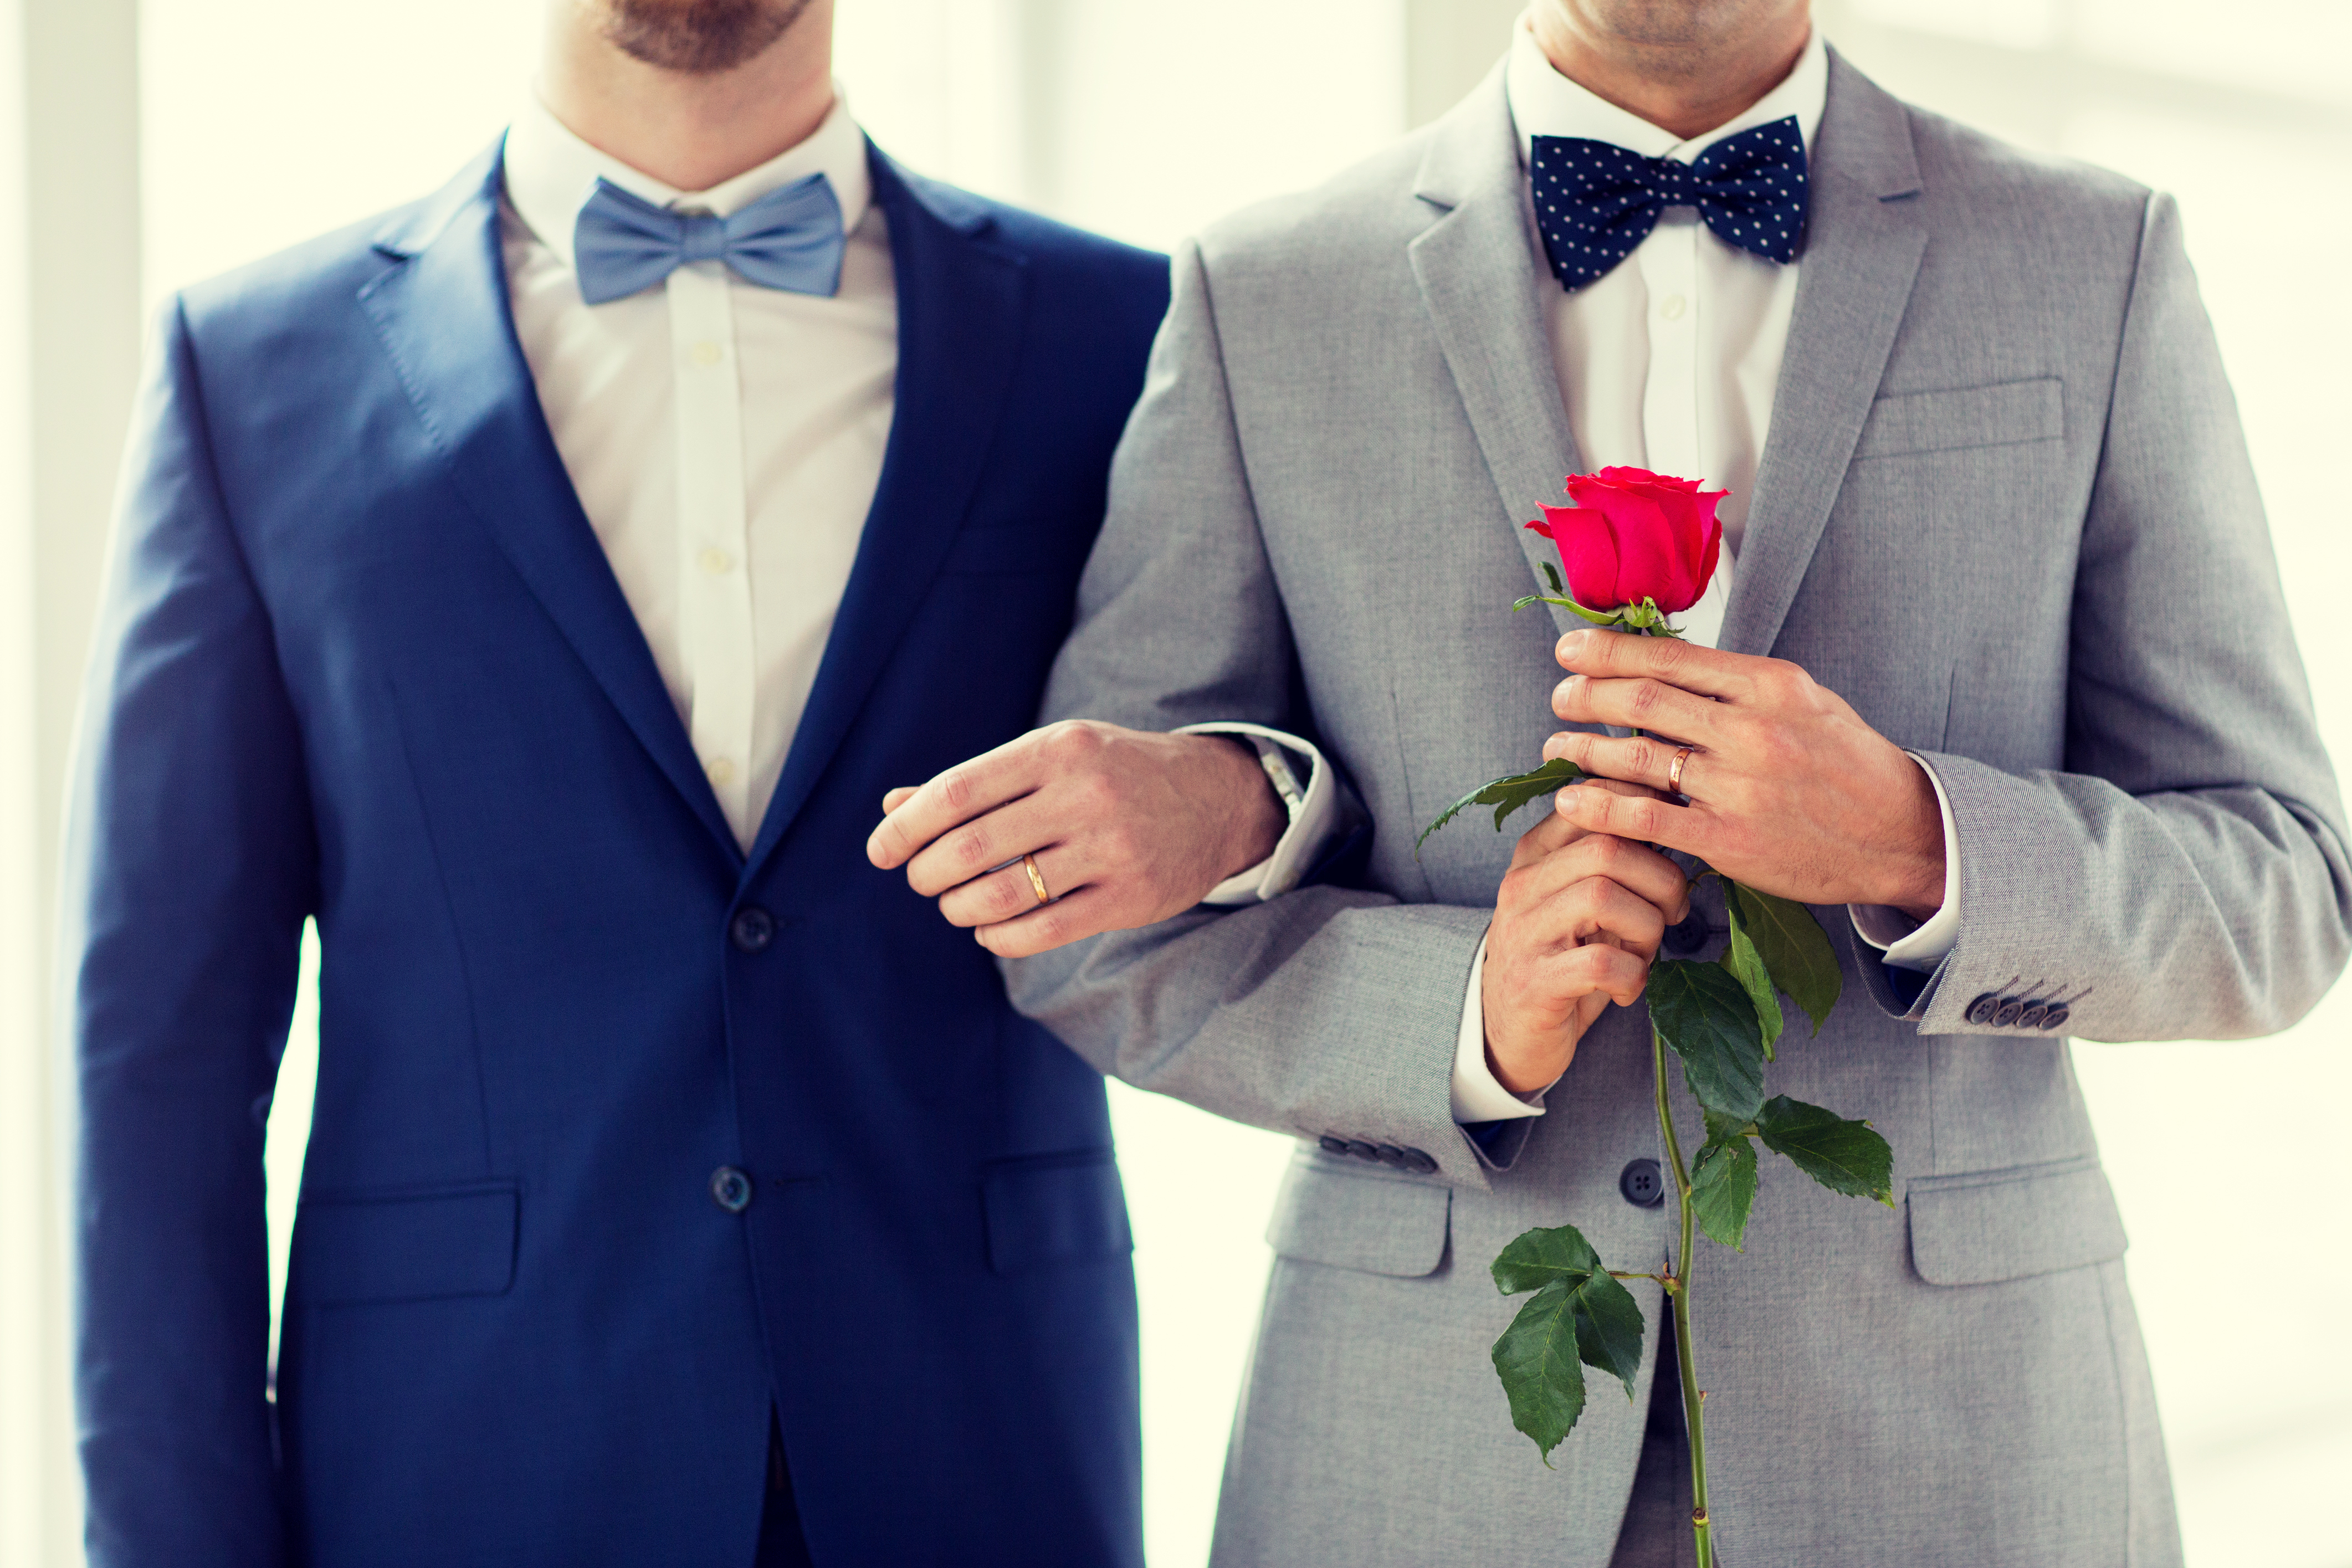 Gay Couple Marriage